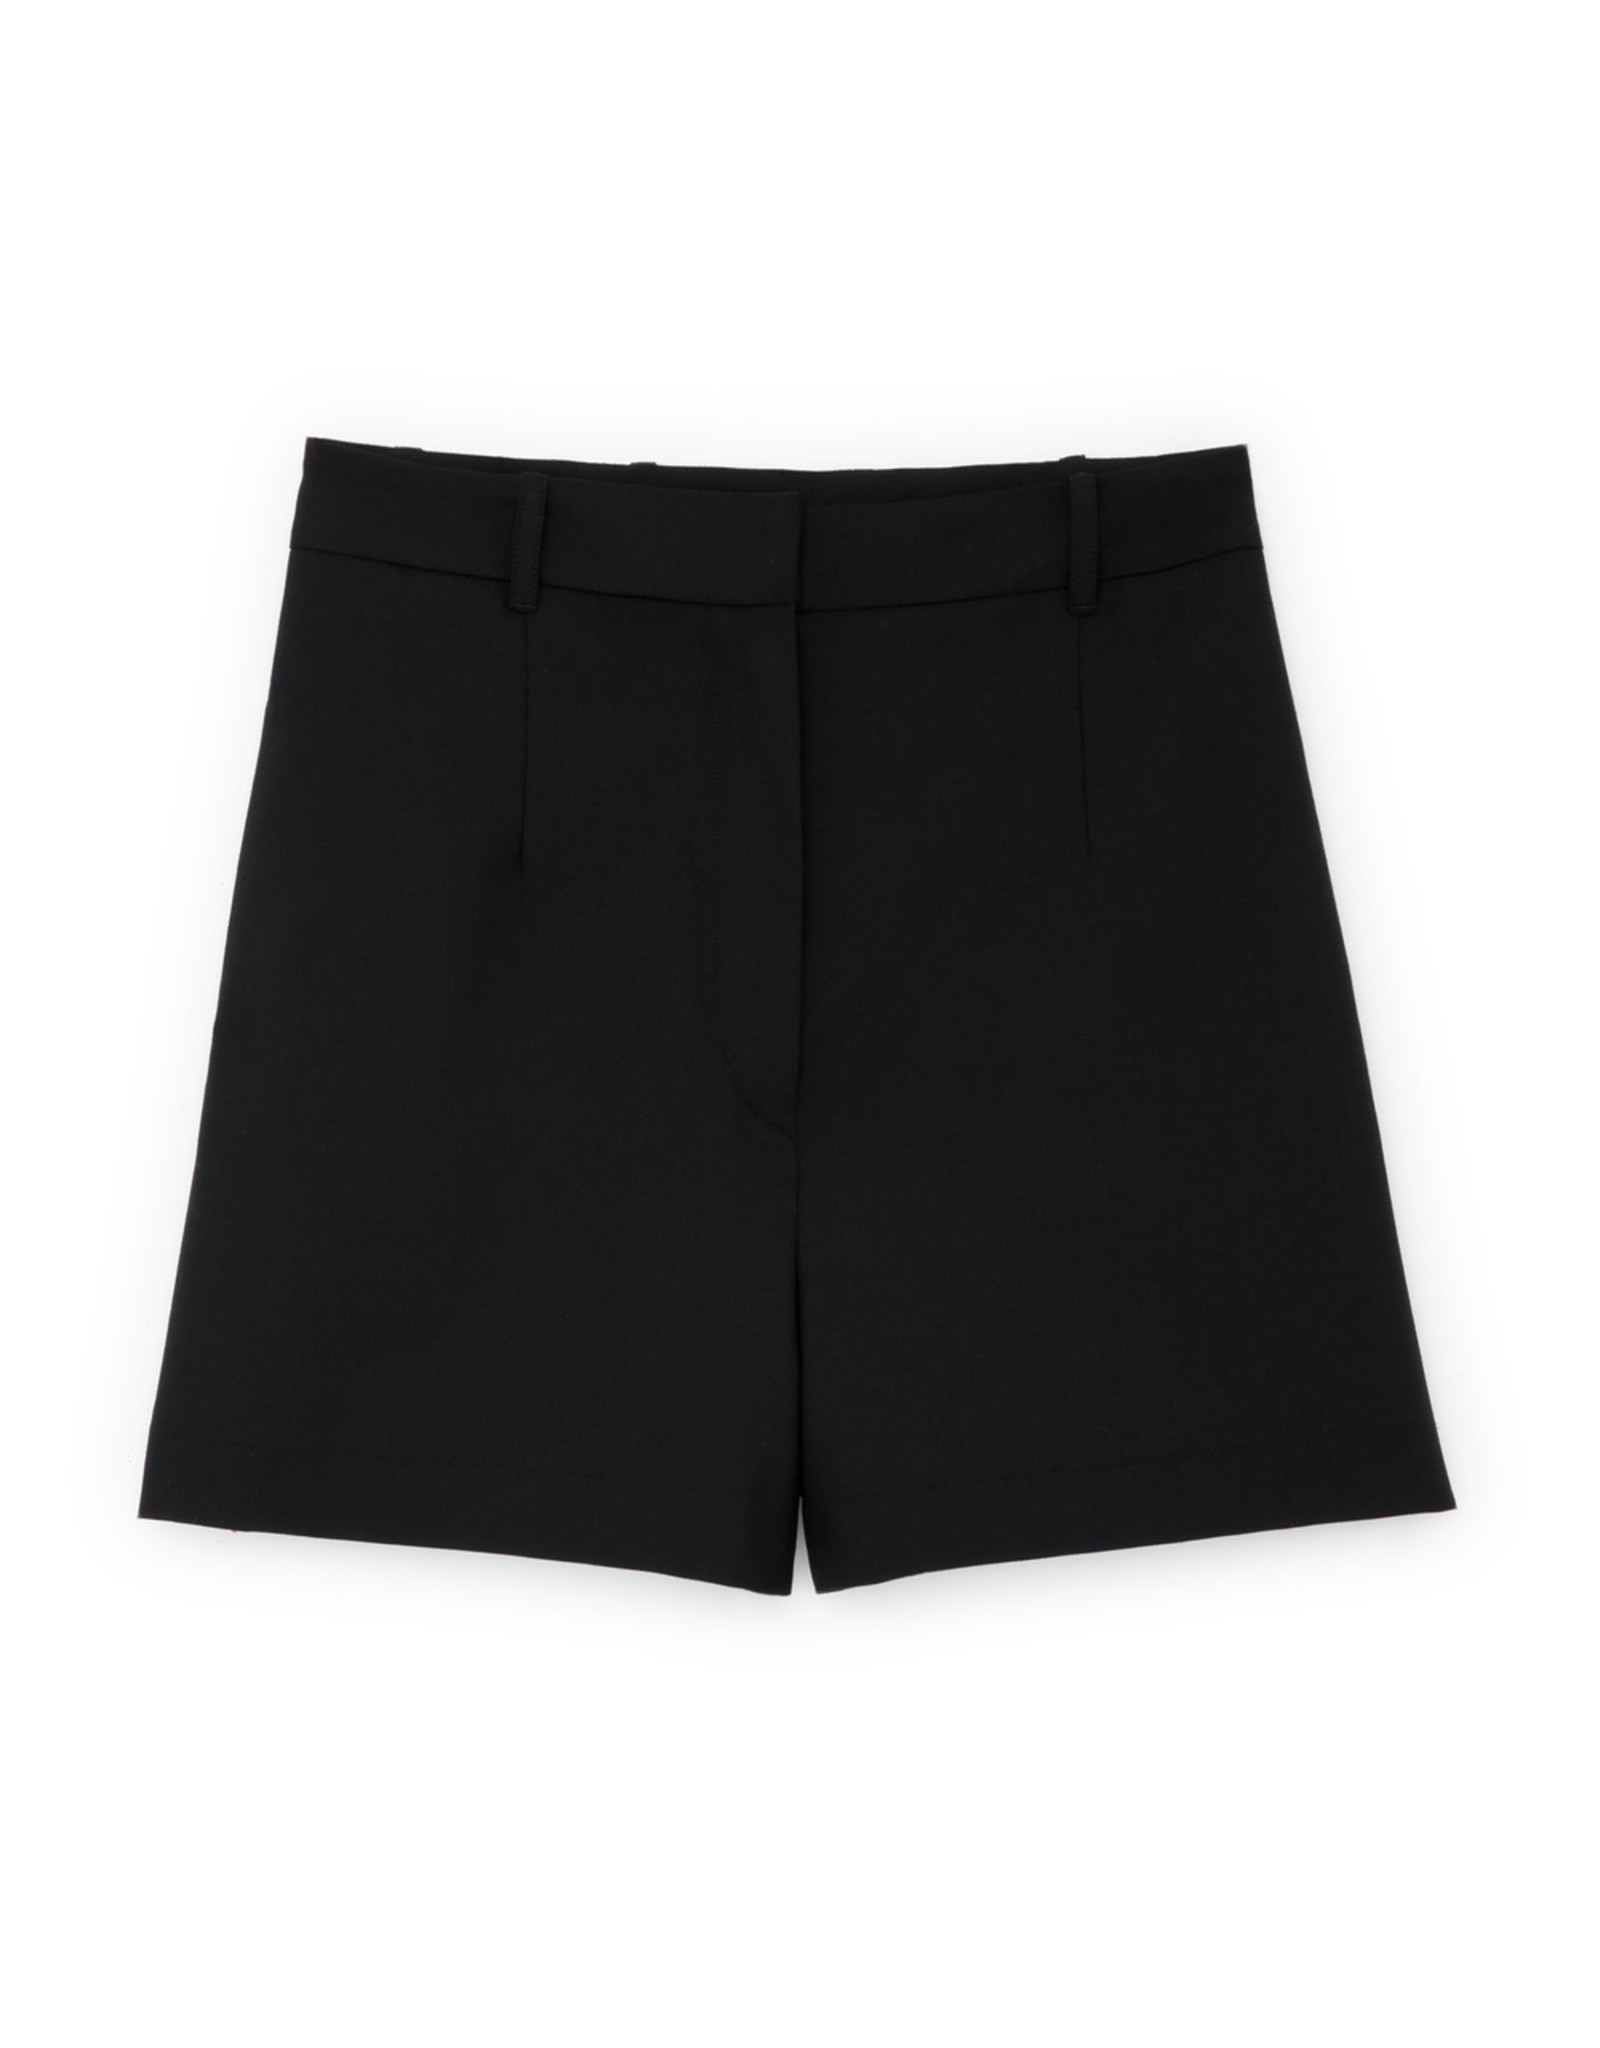 G. Label G. Label Anthony Tailored Shorts (Color: Black, Size: 8)